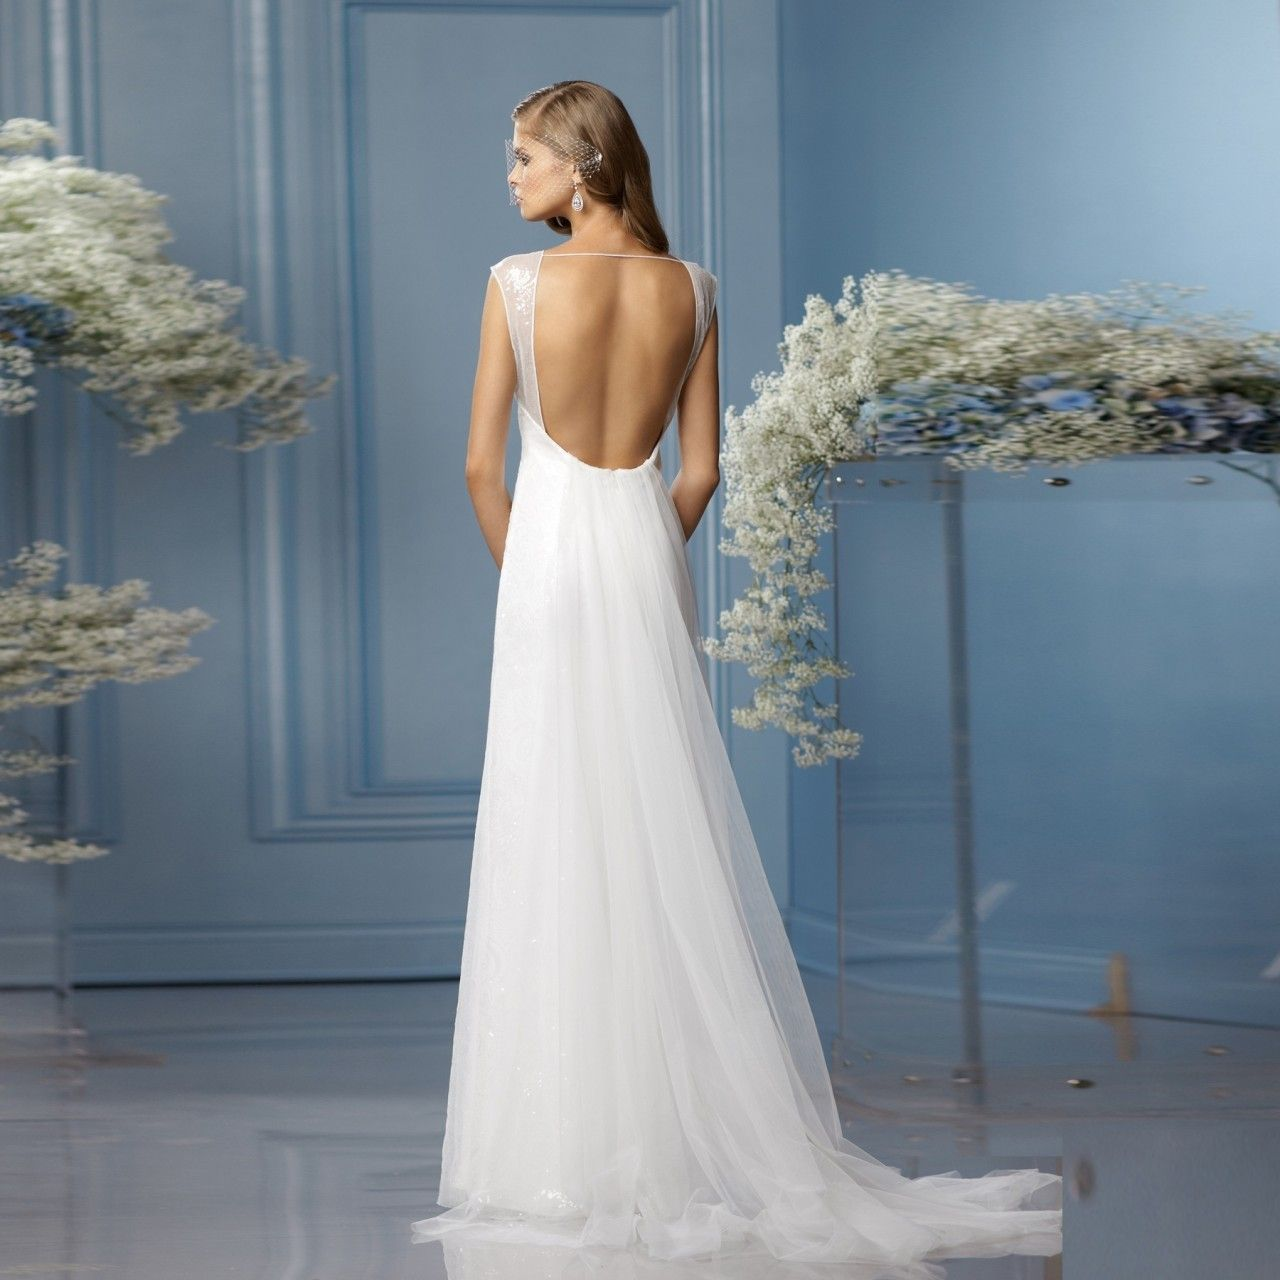 Fashionably Yours - SHILOH Bridal Gown By Wtoo, Please call 02-9487 ...